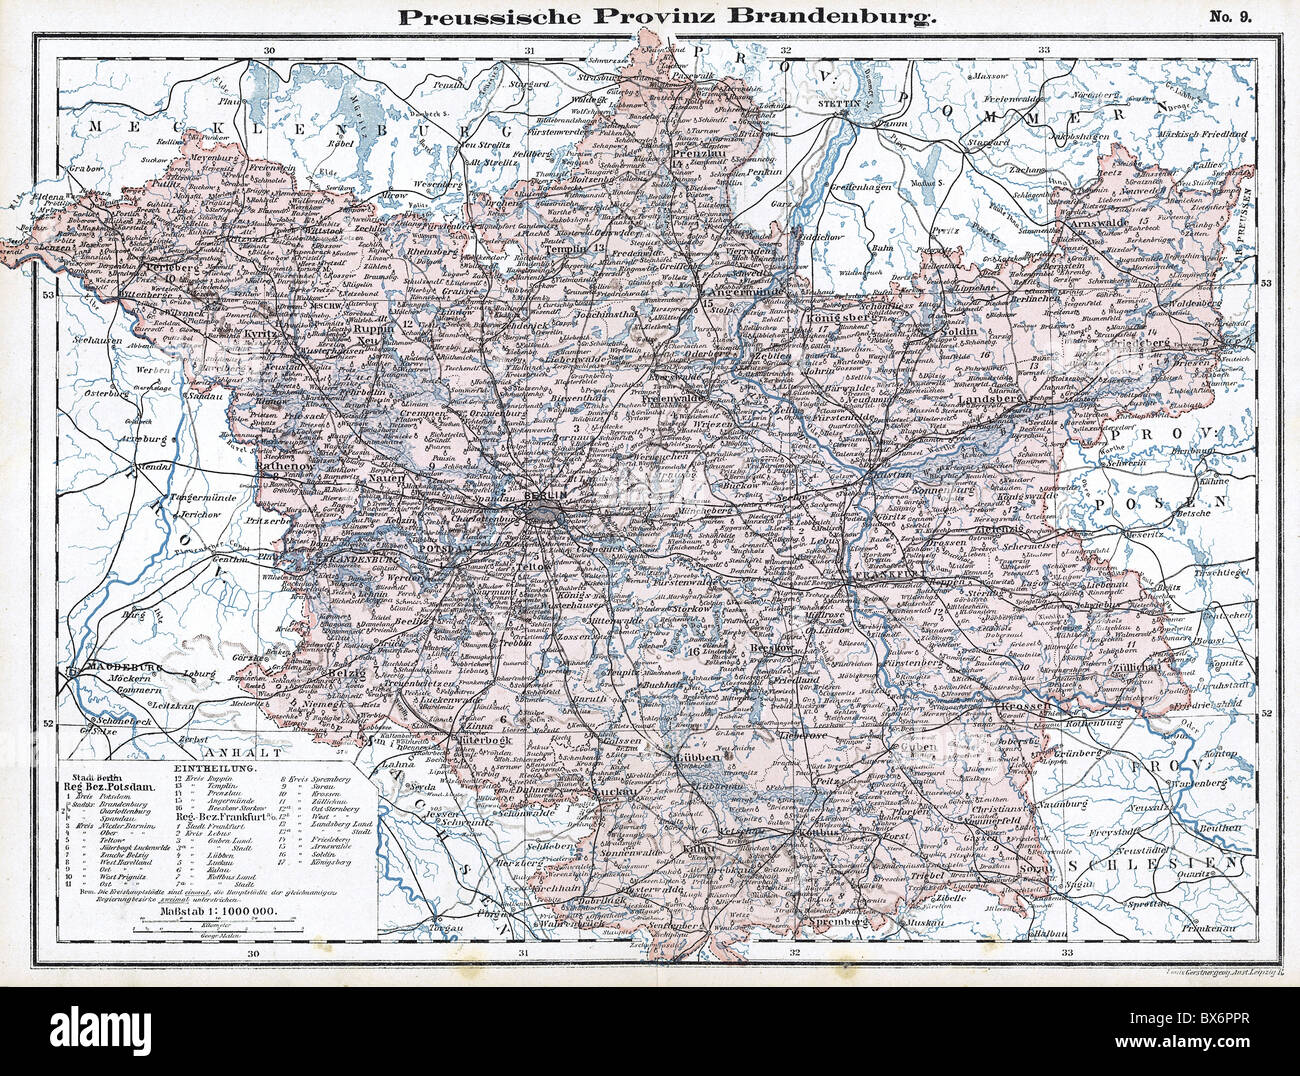 cartography maps Central Europe Germany Kingdom of Prussia Stock